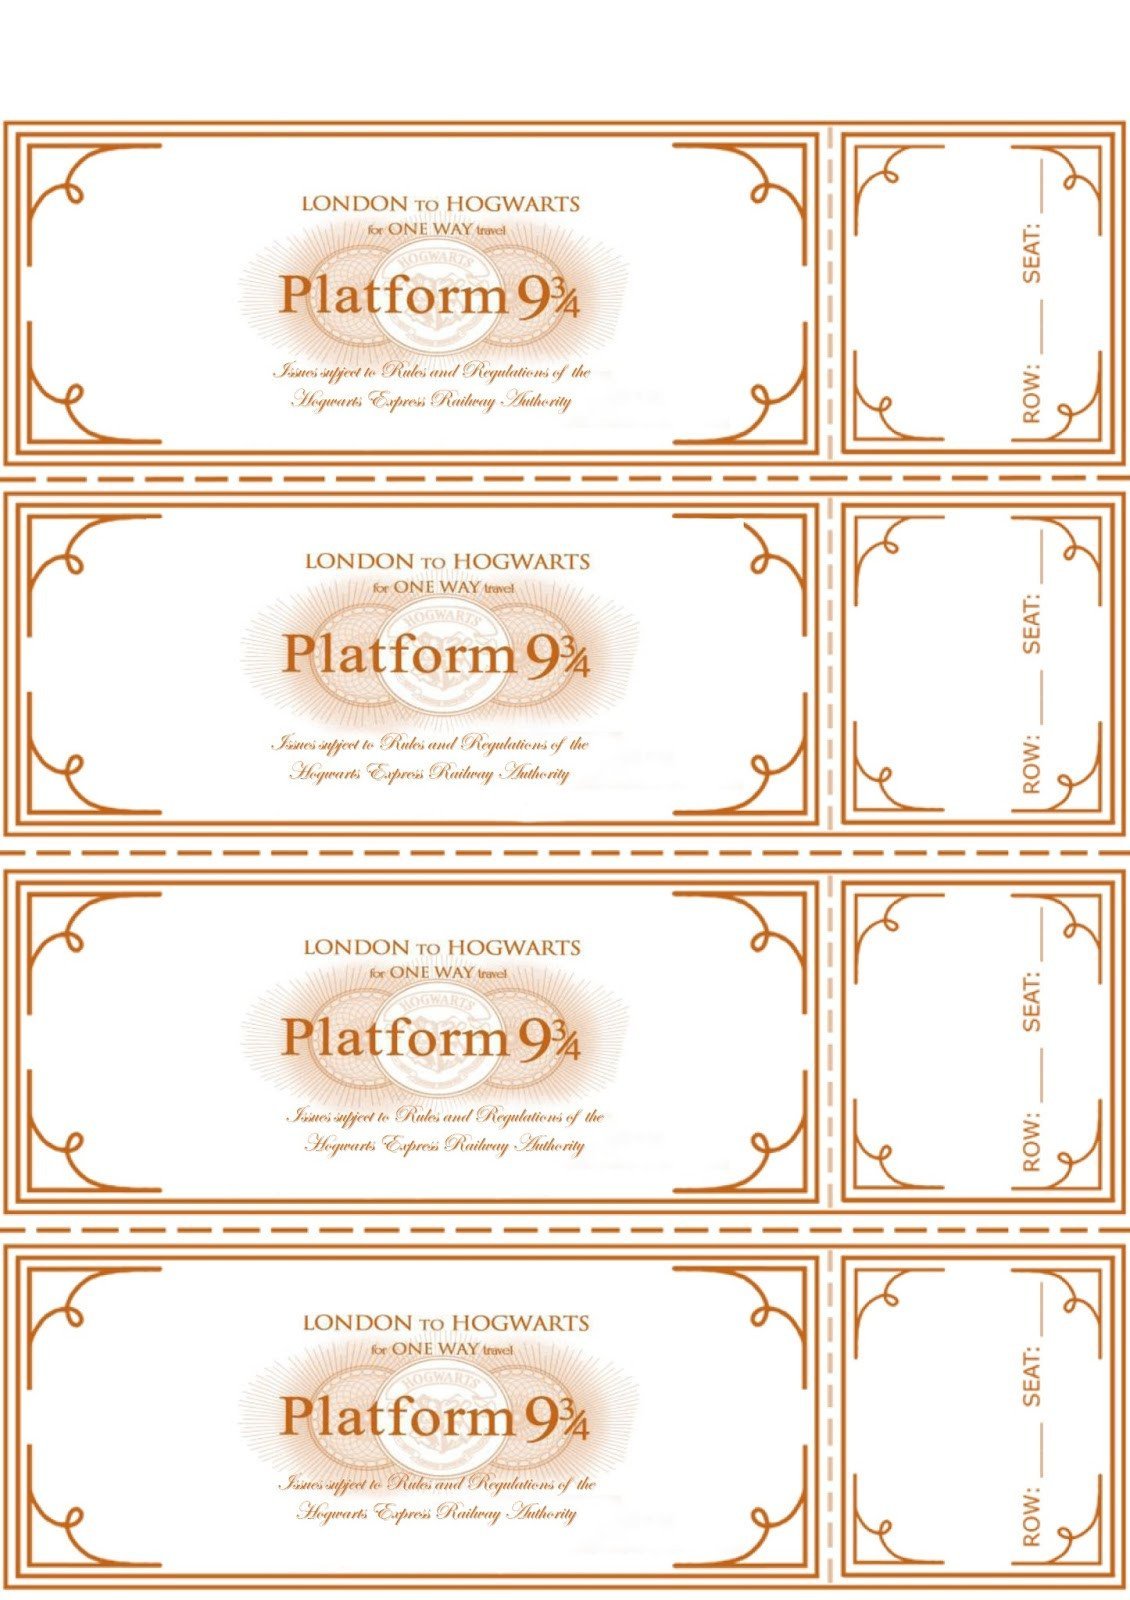 Hogwarts Express Ticket Template Ticket Template Hogwarts Express Editable